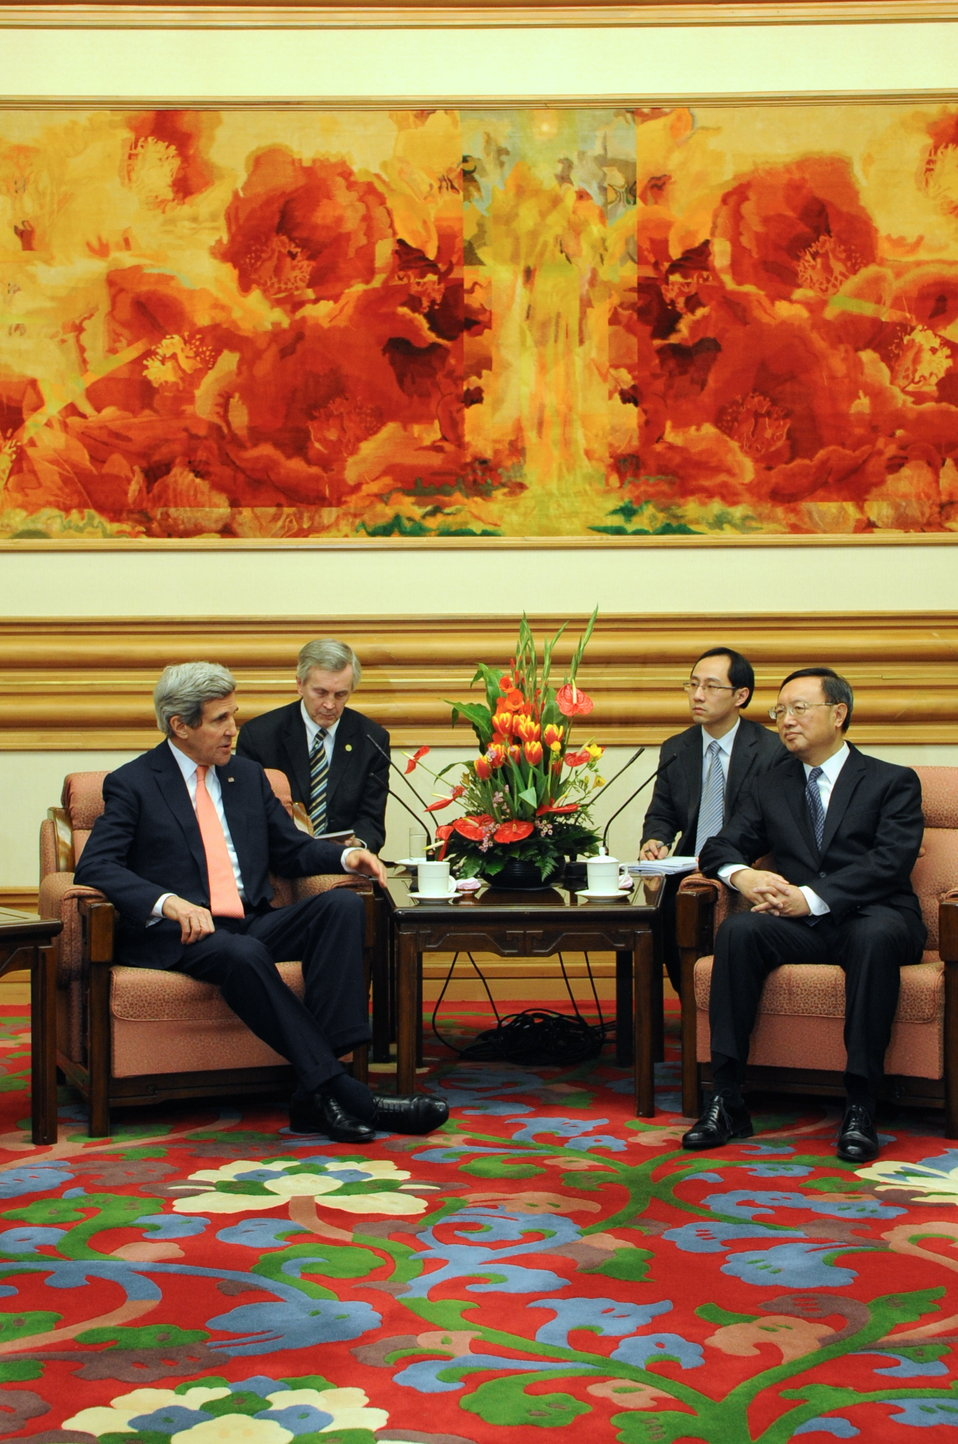 Secretary Kerry Meets With Chinese State Councilor Yang